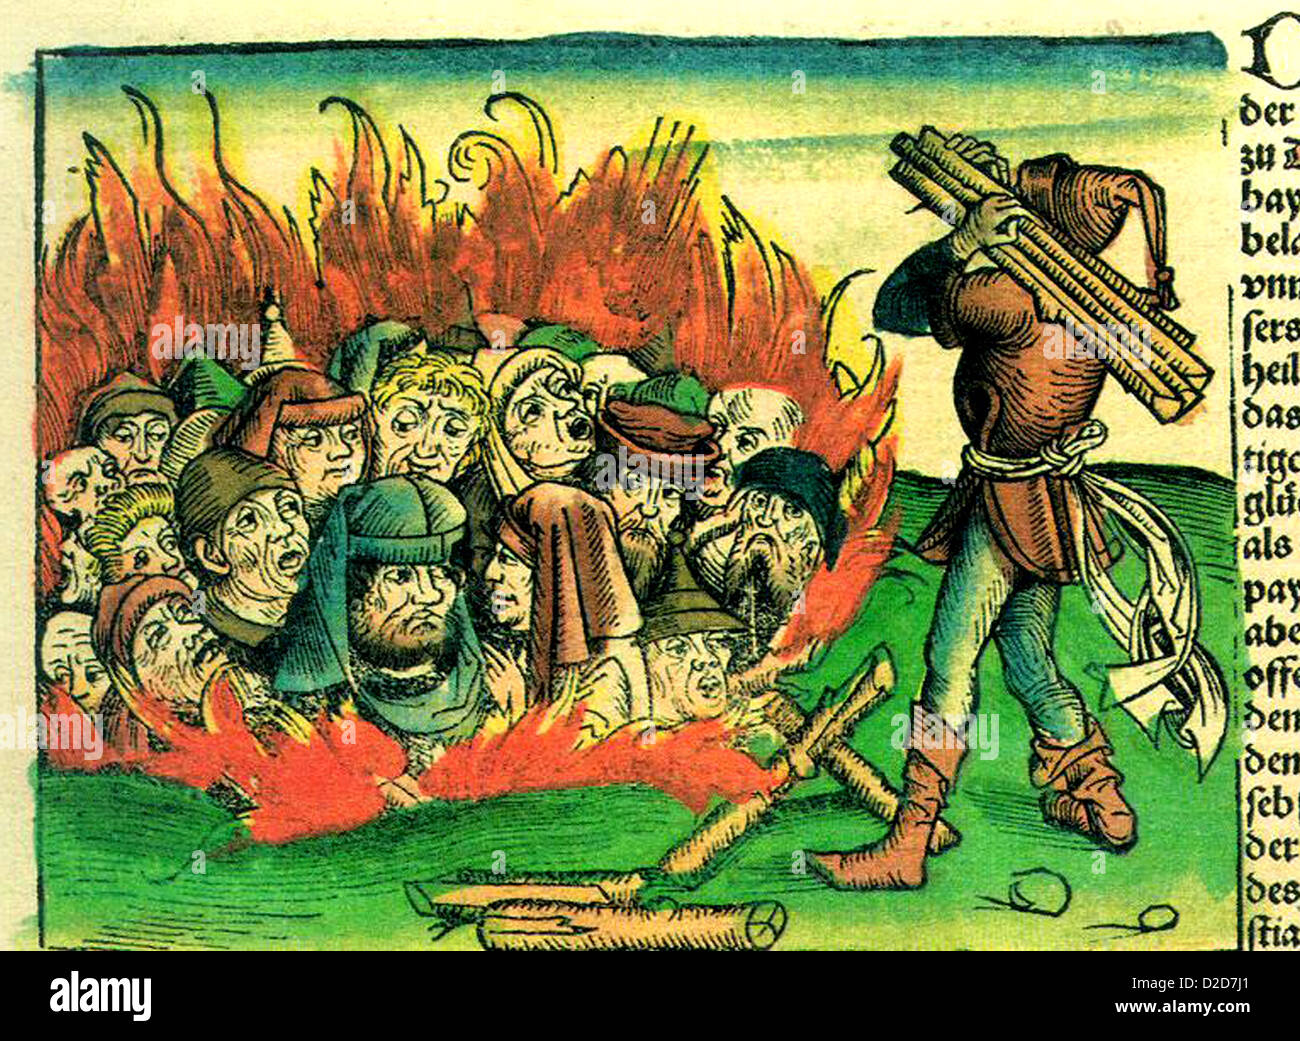 http://c8.alamy.com/comp/D2D7J1/jewish-doctors-burnt-alive-during-the-black-death-from-the-world-history-D2D7J1.jpg